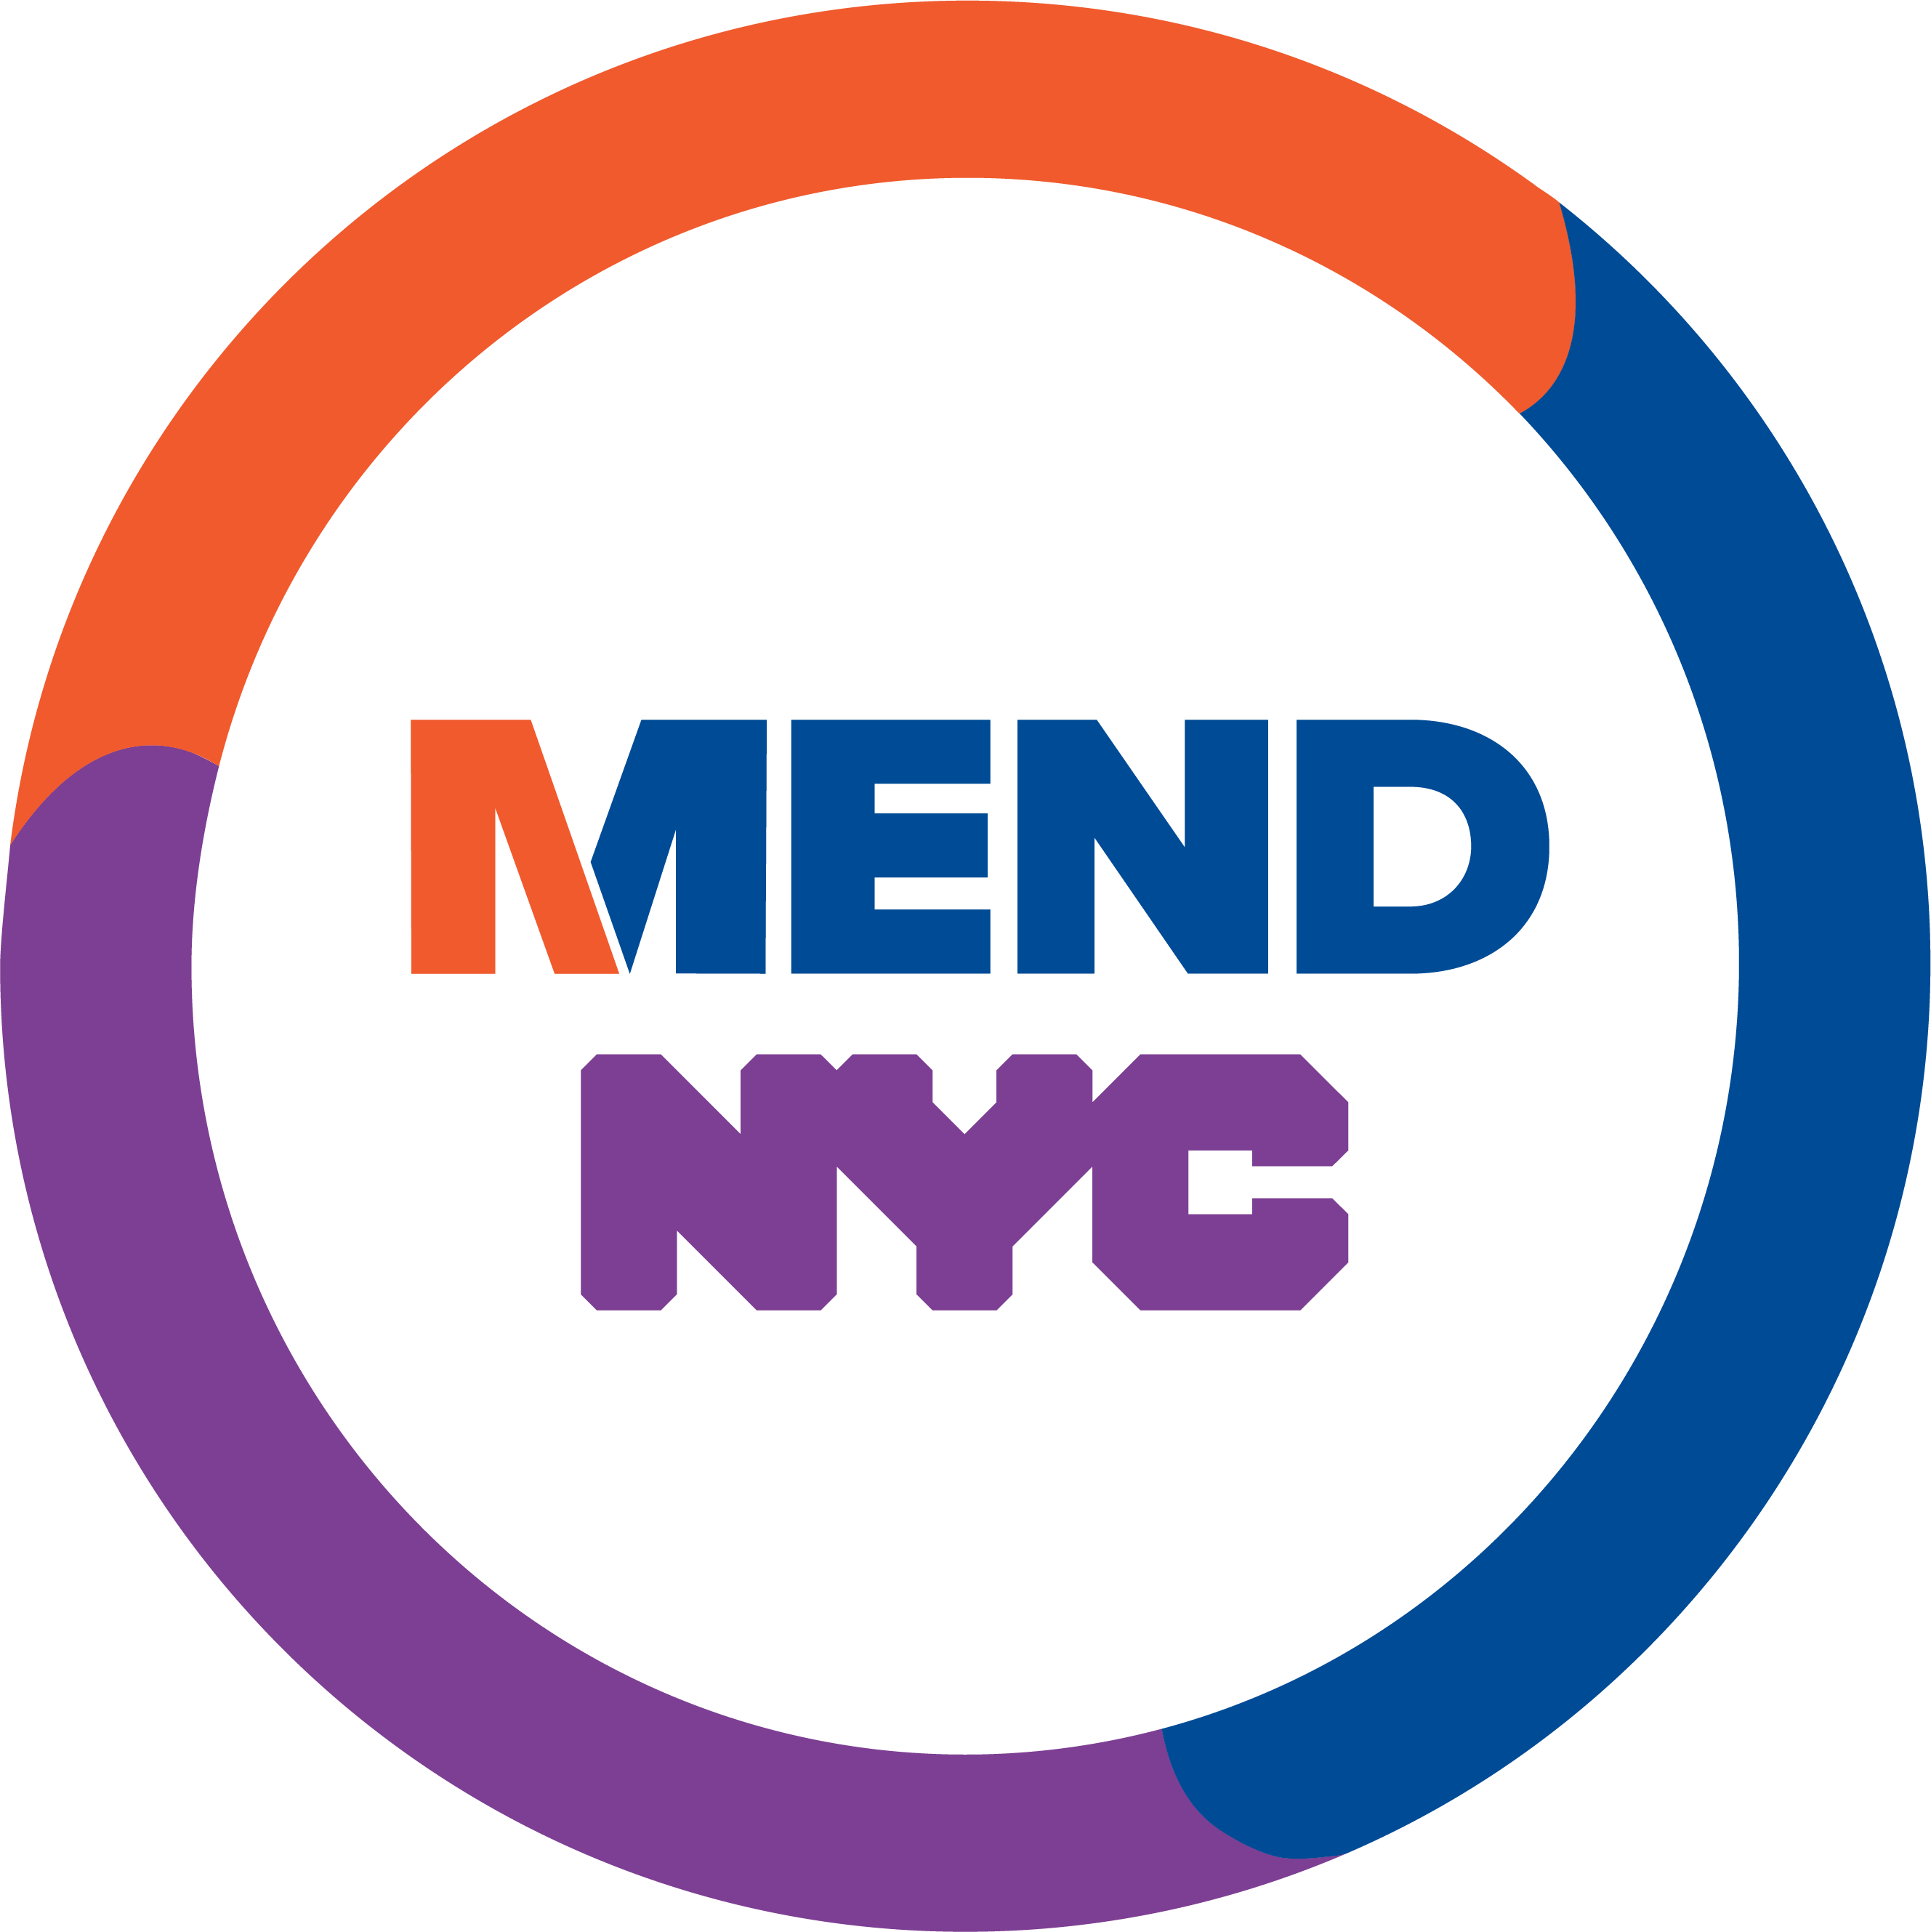 MEND NYC